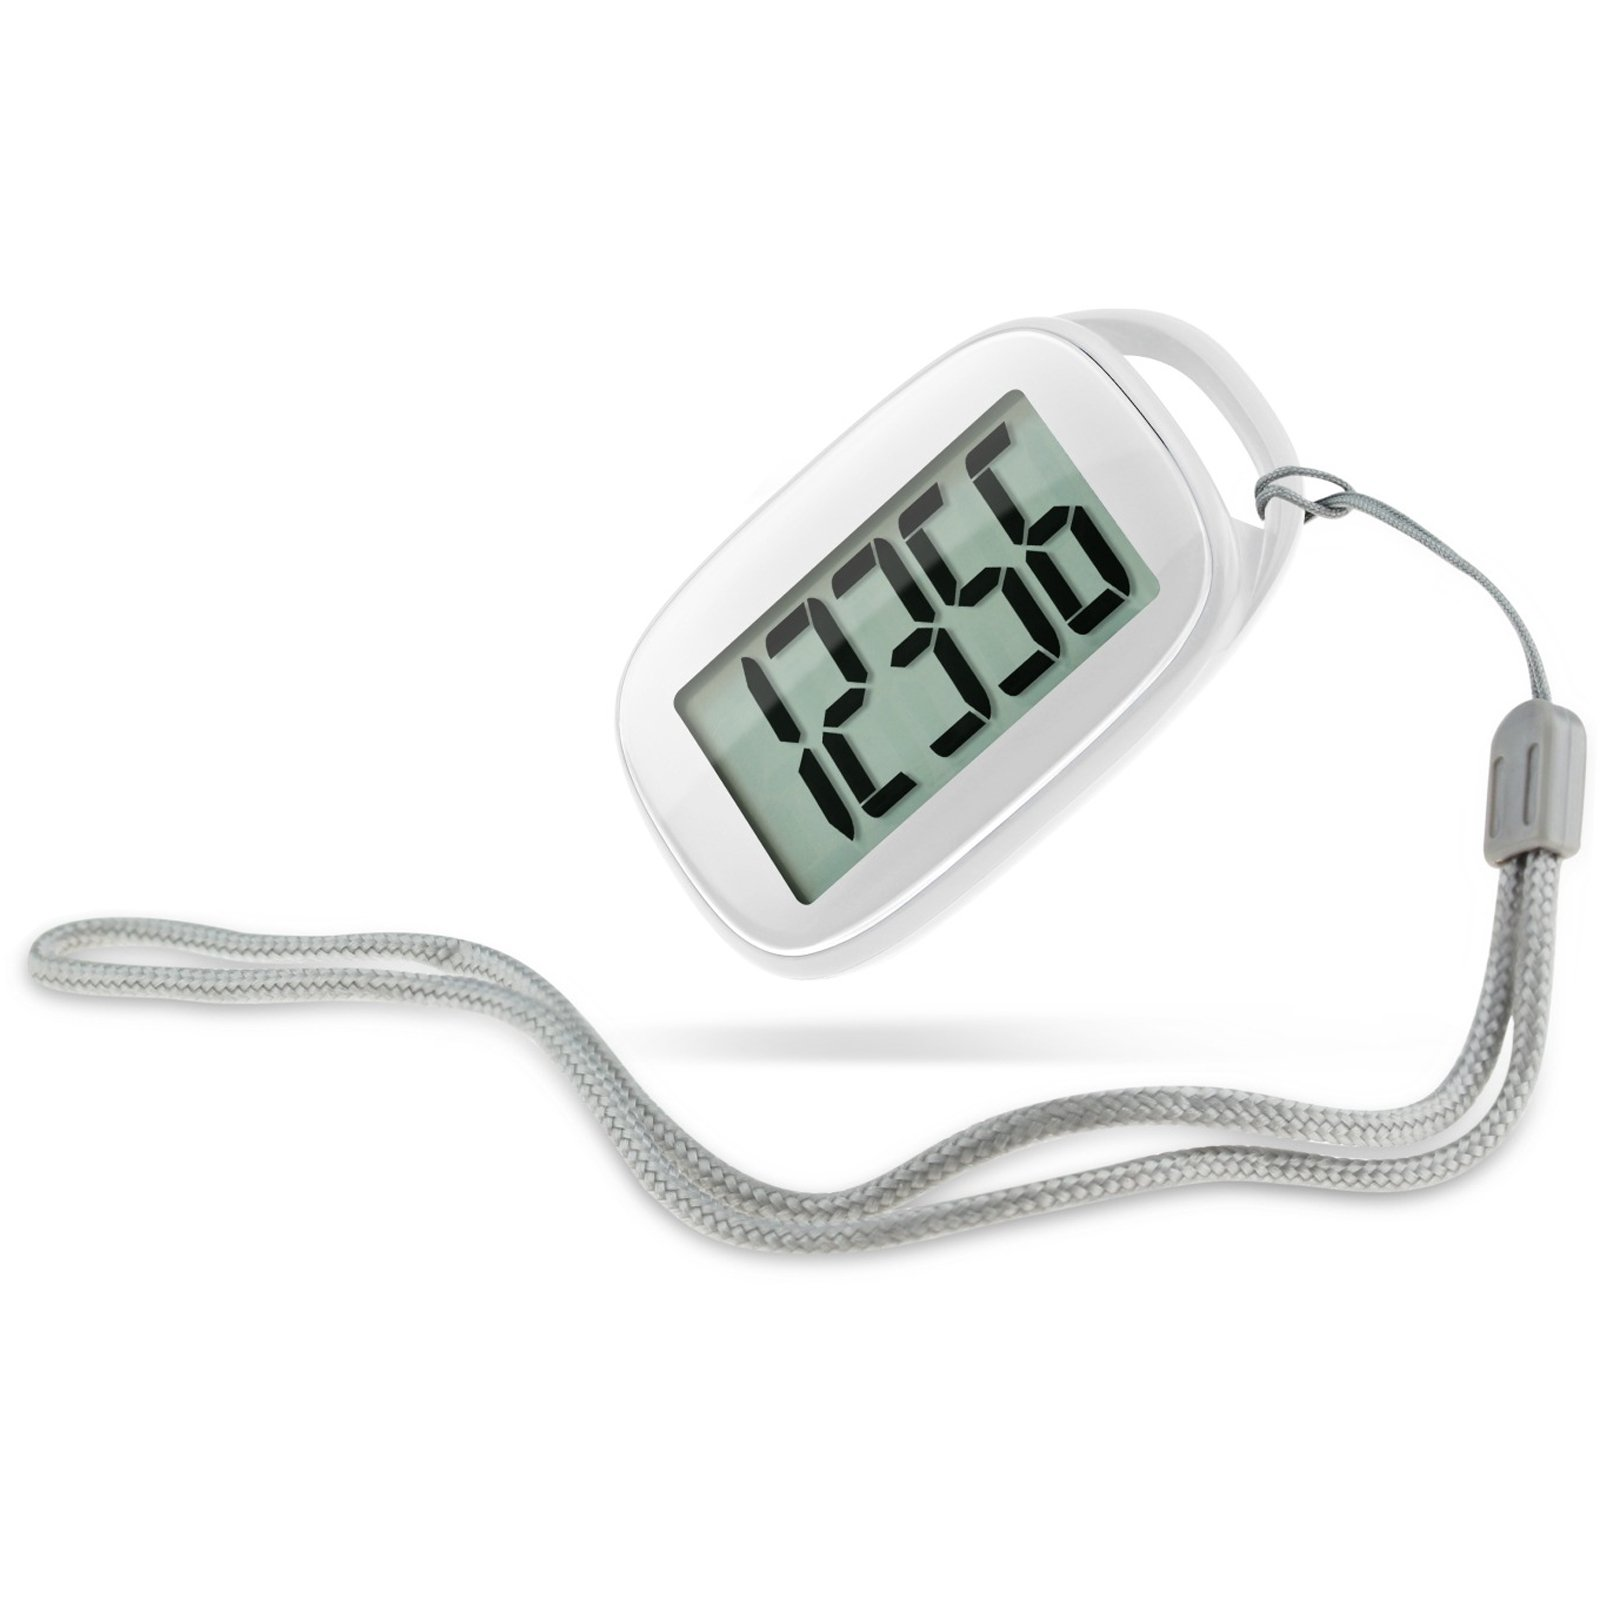 DULEE Extra Big Screen Display Digits 3D Sensor Pedometer Step Counter Outdoor Walking Professional Electronic Pedometer,White